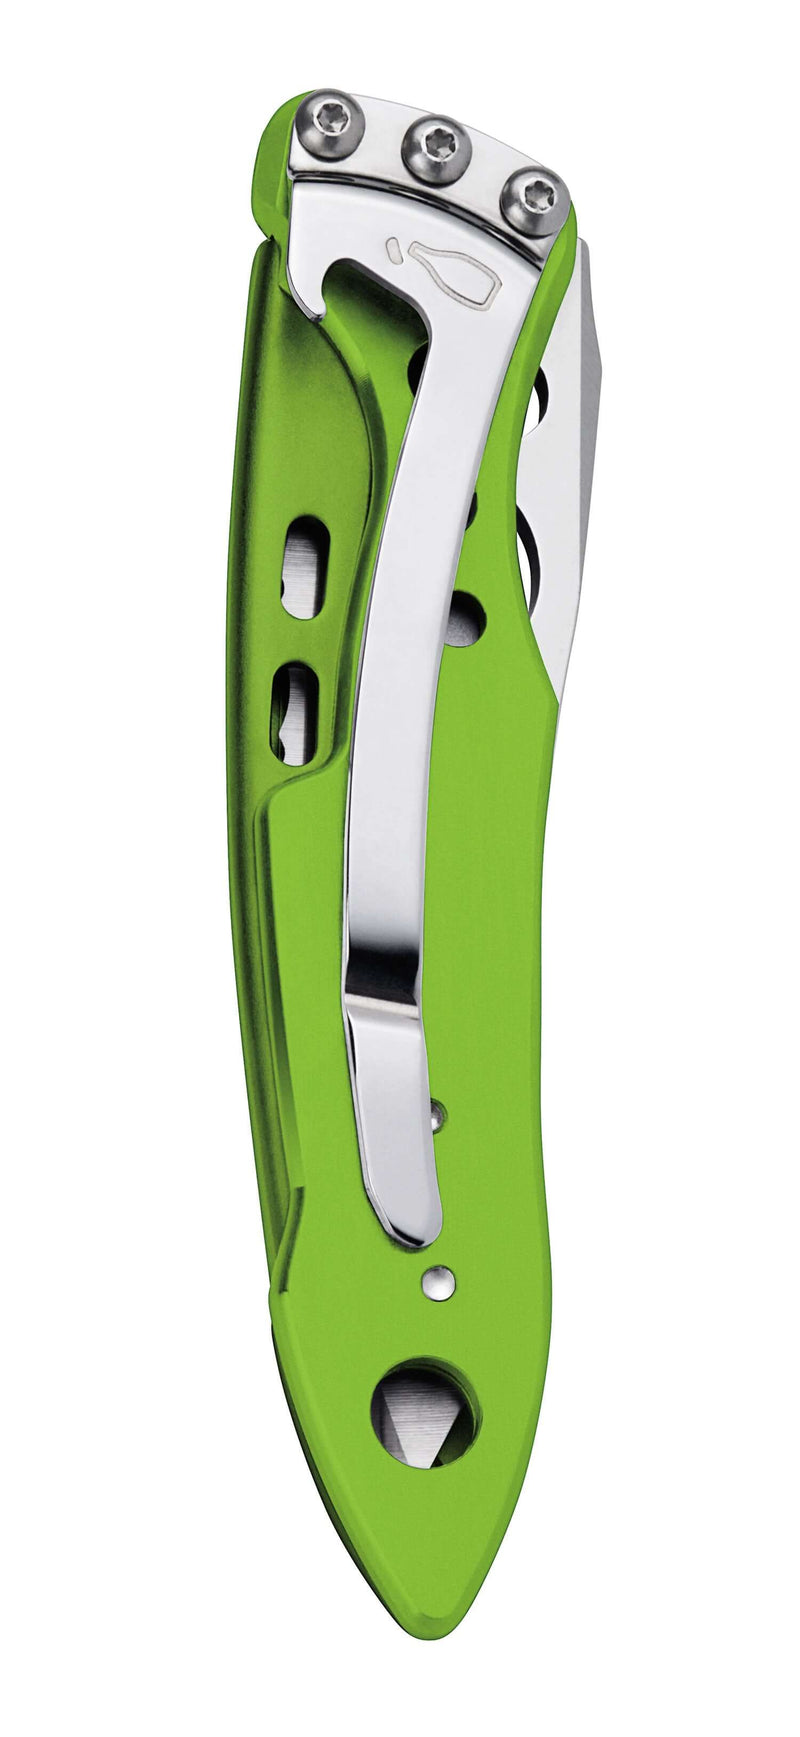 Closed Sublime Green Skeletool KBx Knife by Leatherman